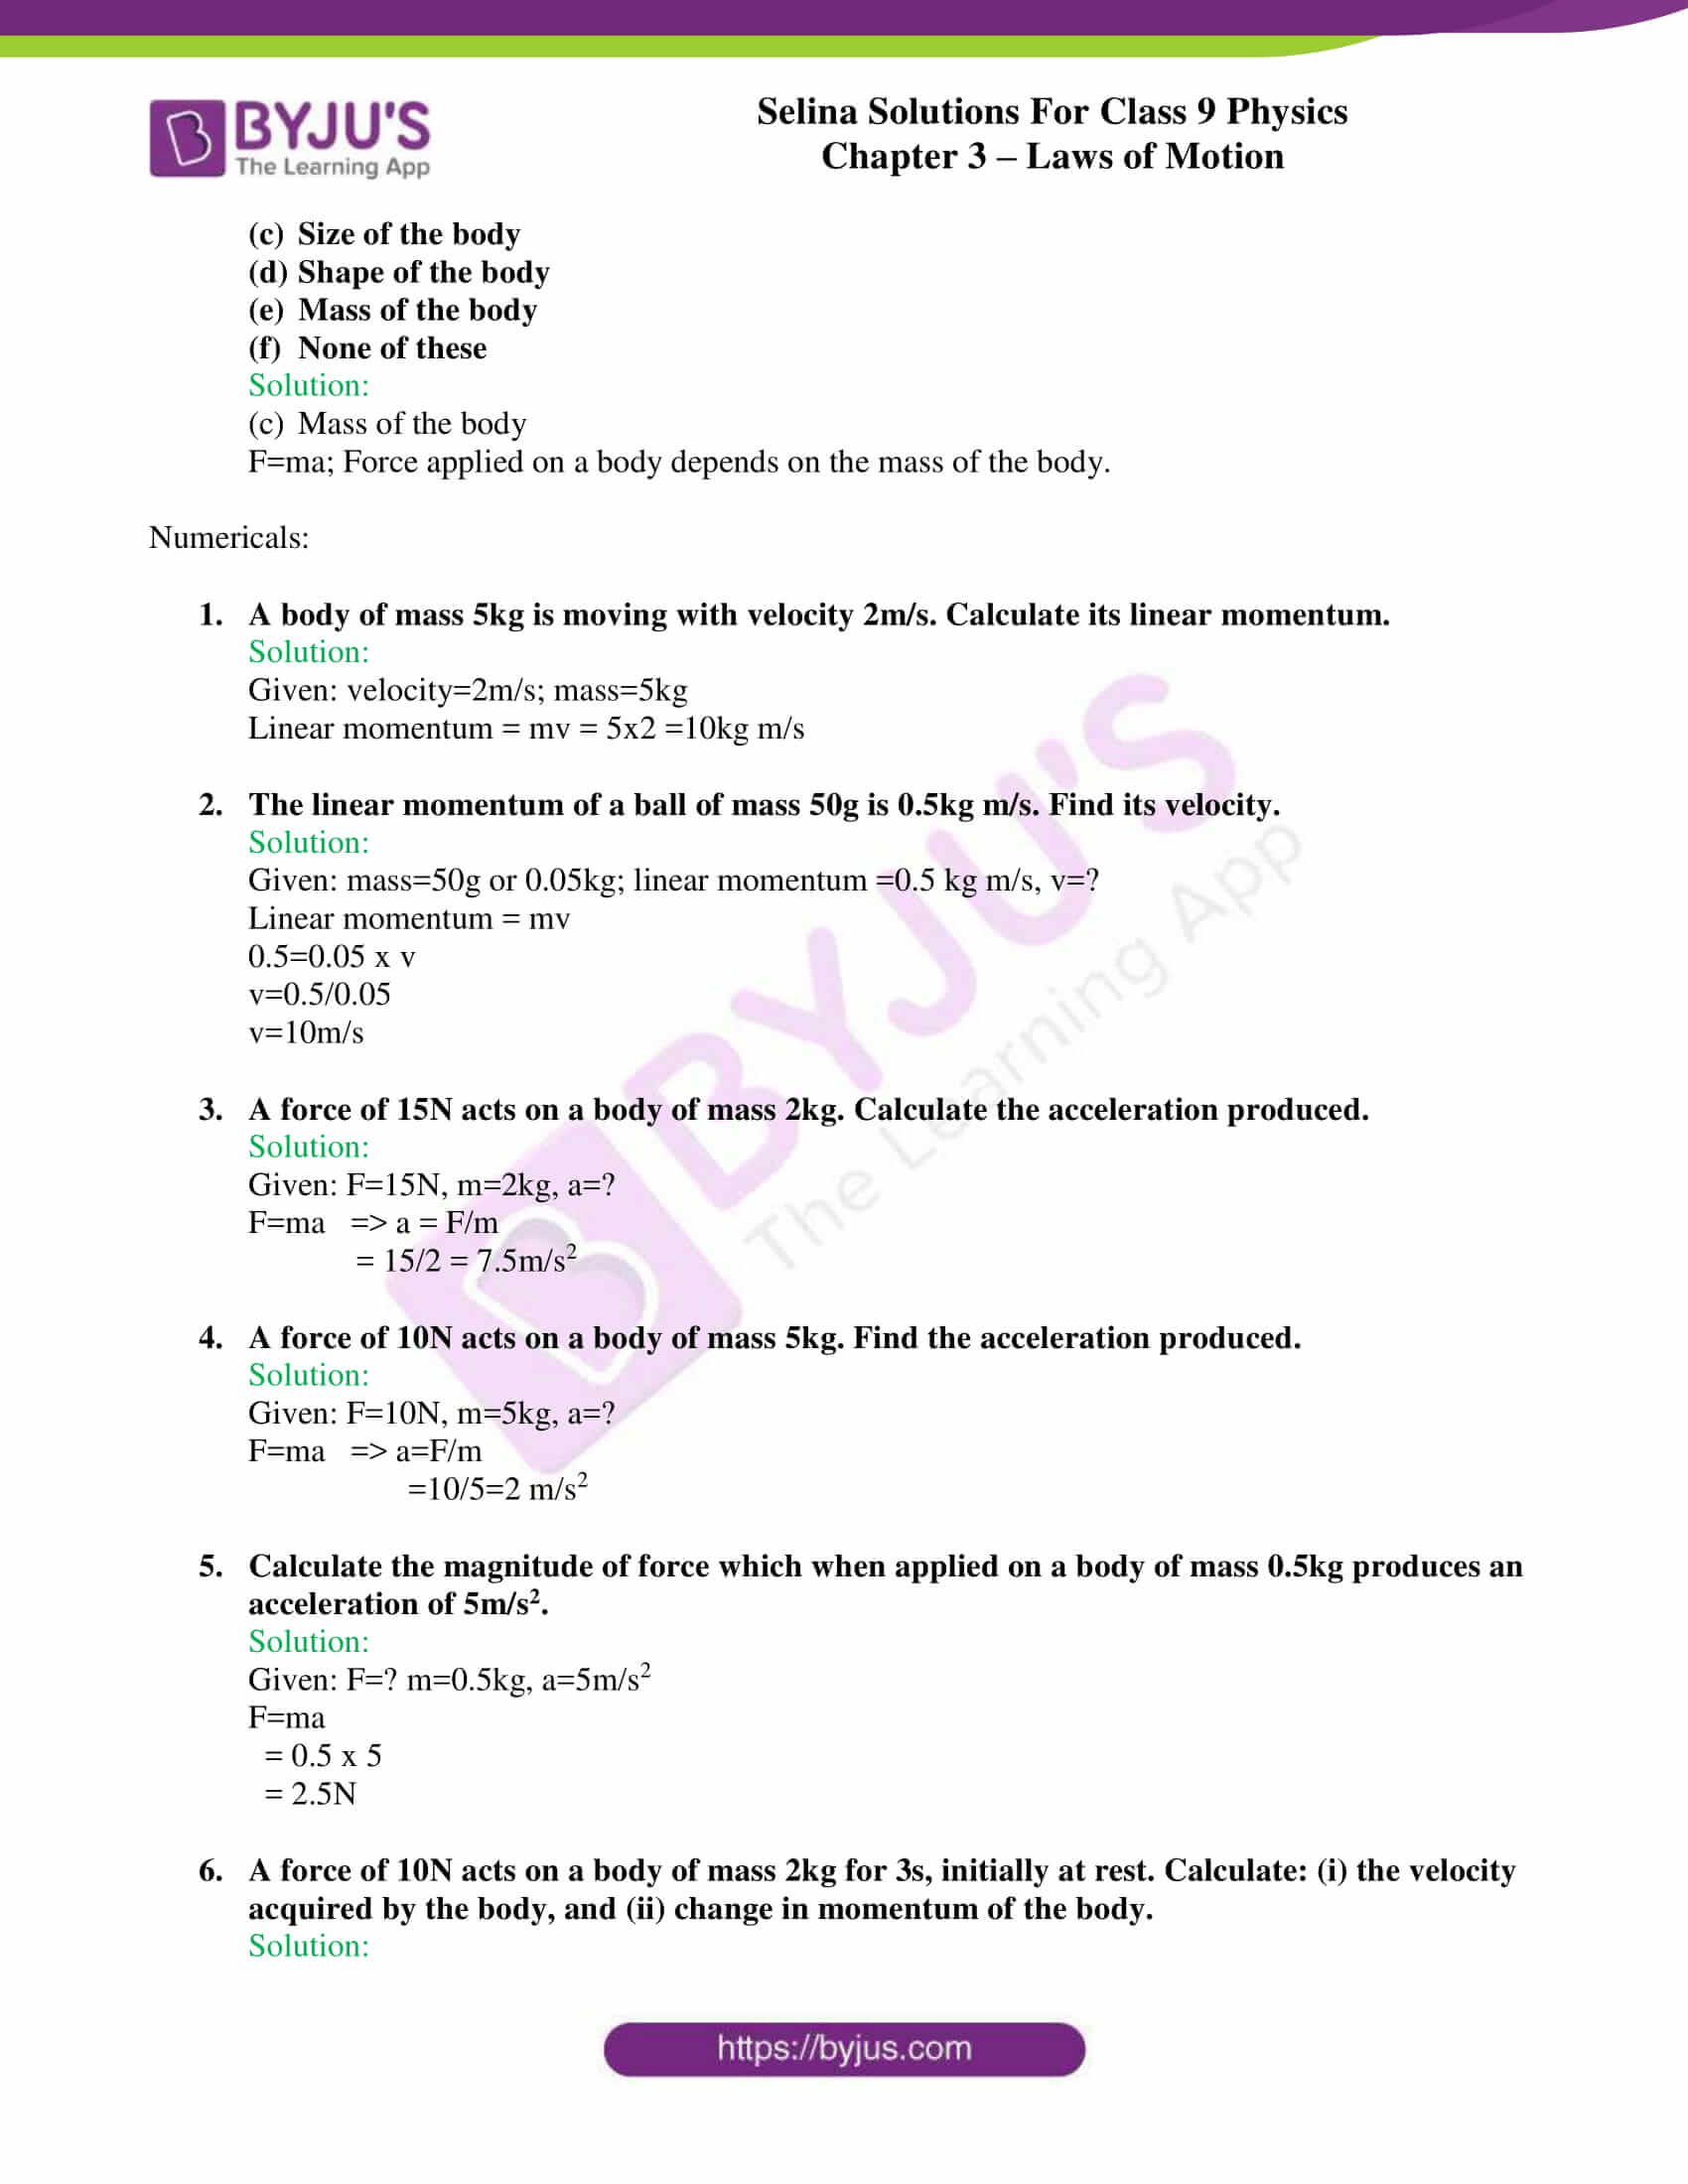 selina solutions class 9 physics chapter 3 Laws of Motion part 16